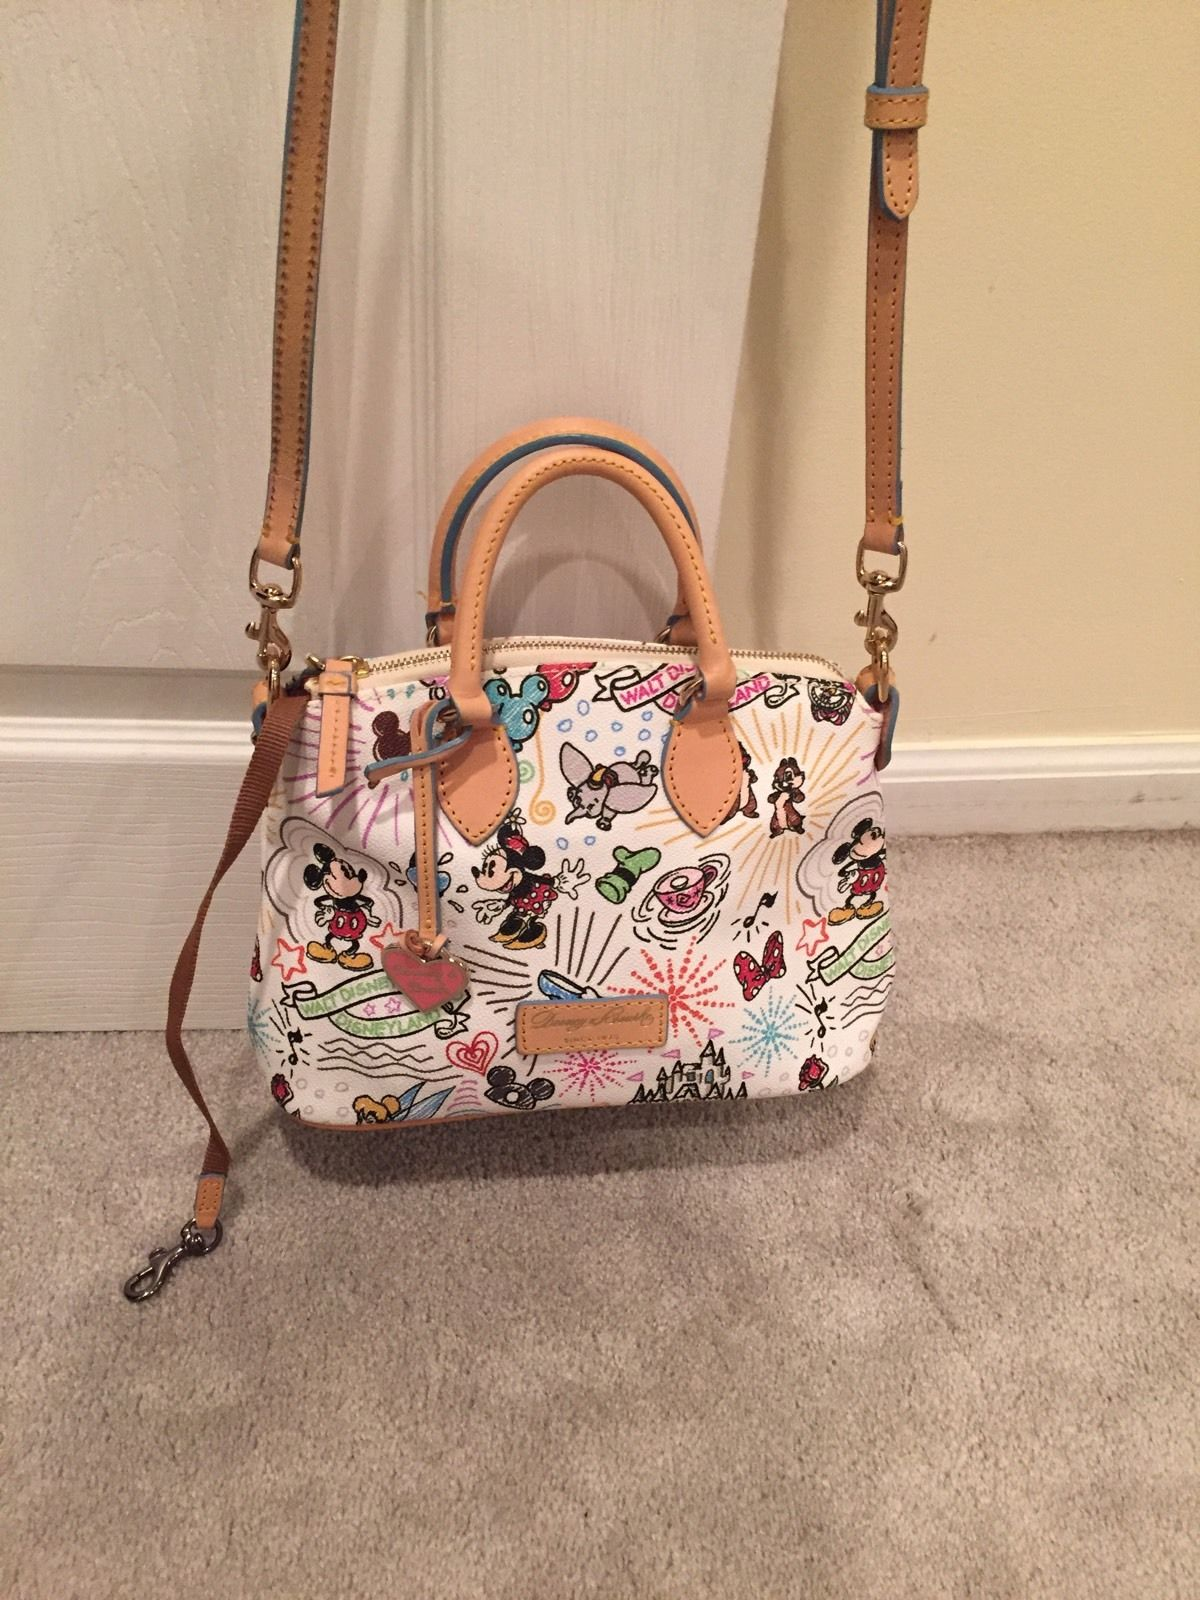 disney shoulder bag idea